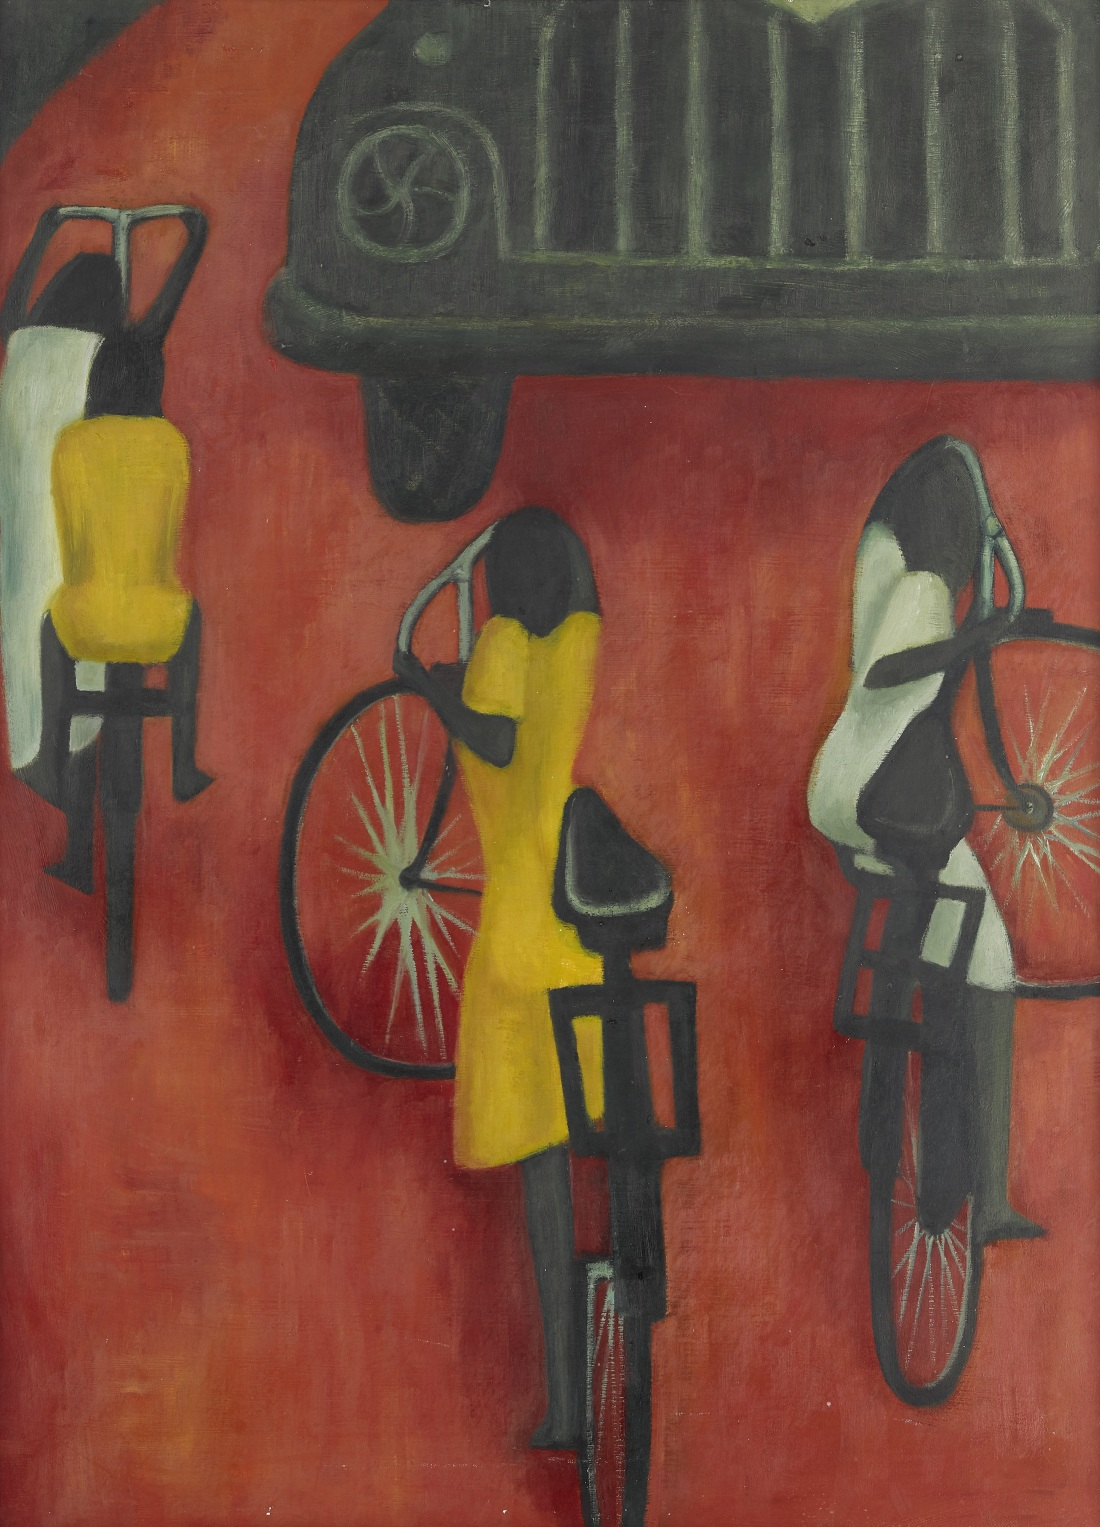 Children on Cycles by Demas Nwoko features a black truck at the top, with four black children, some in white and some in yellow on a red background. The four children are streamlined and abstract, with heads but no faces.